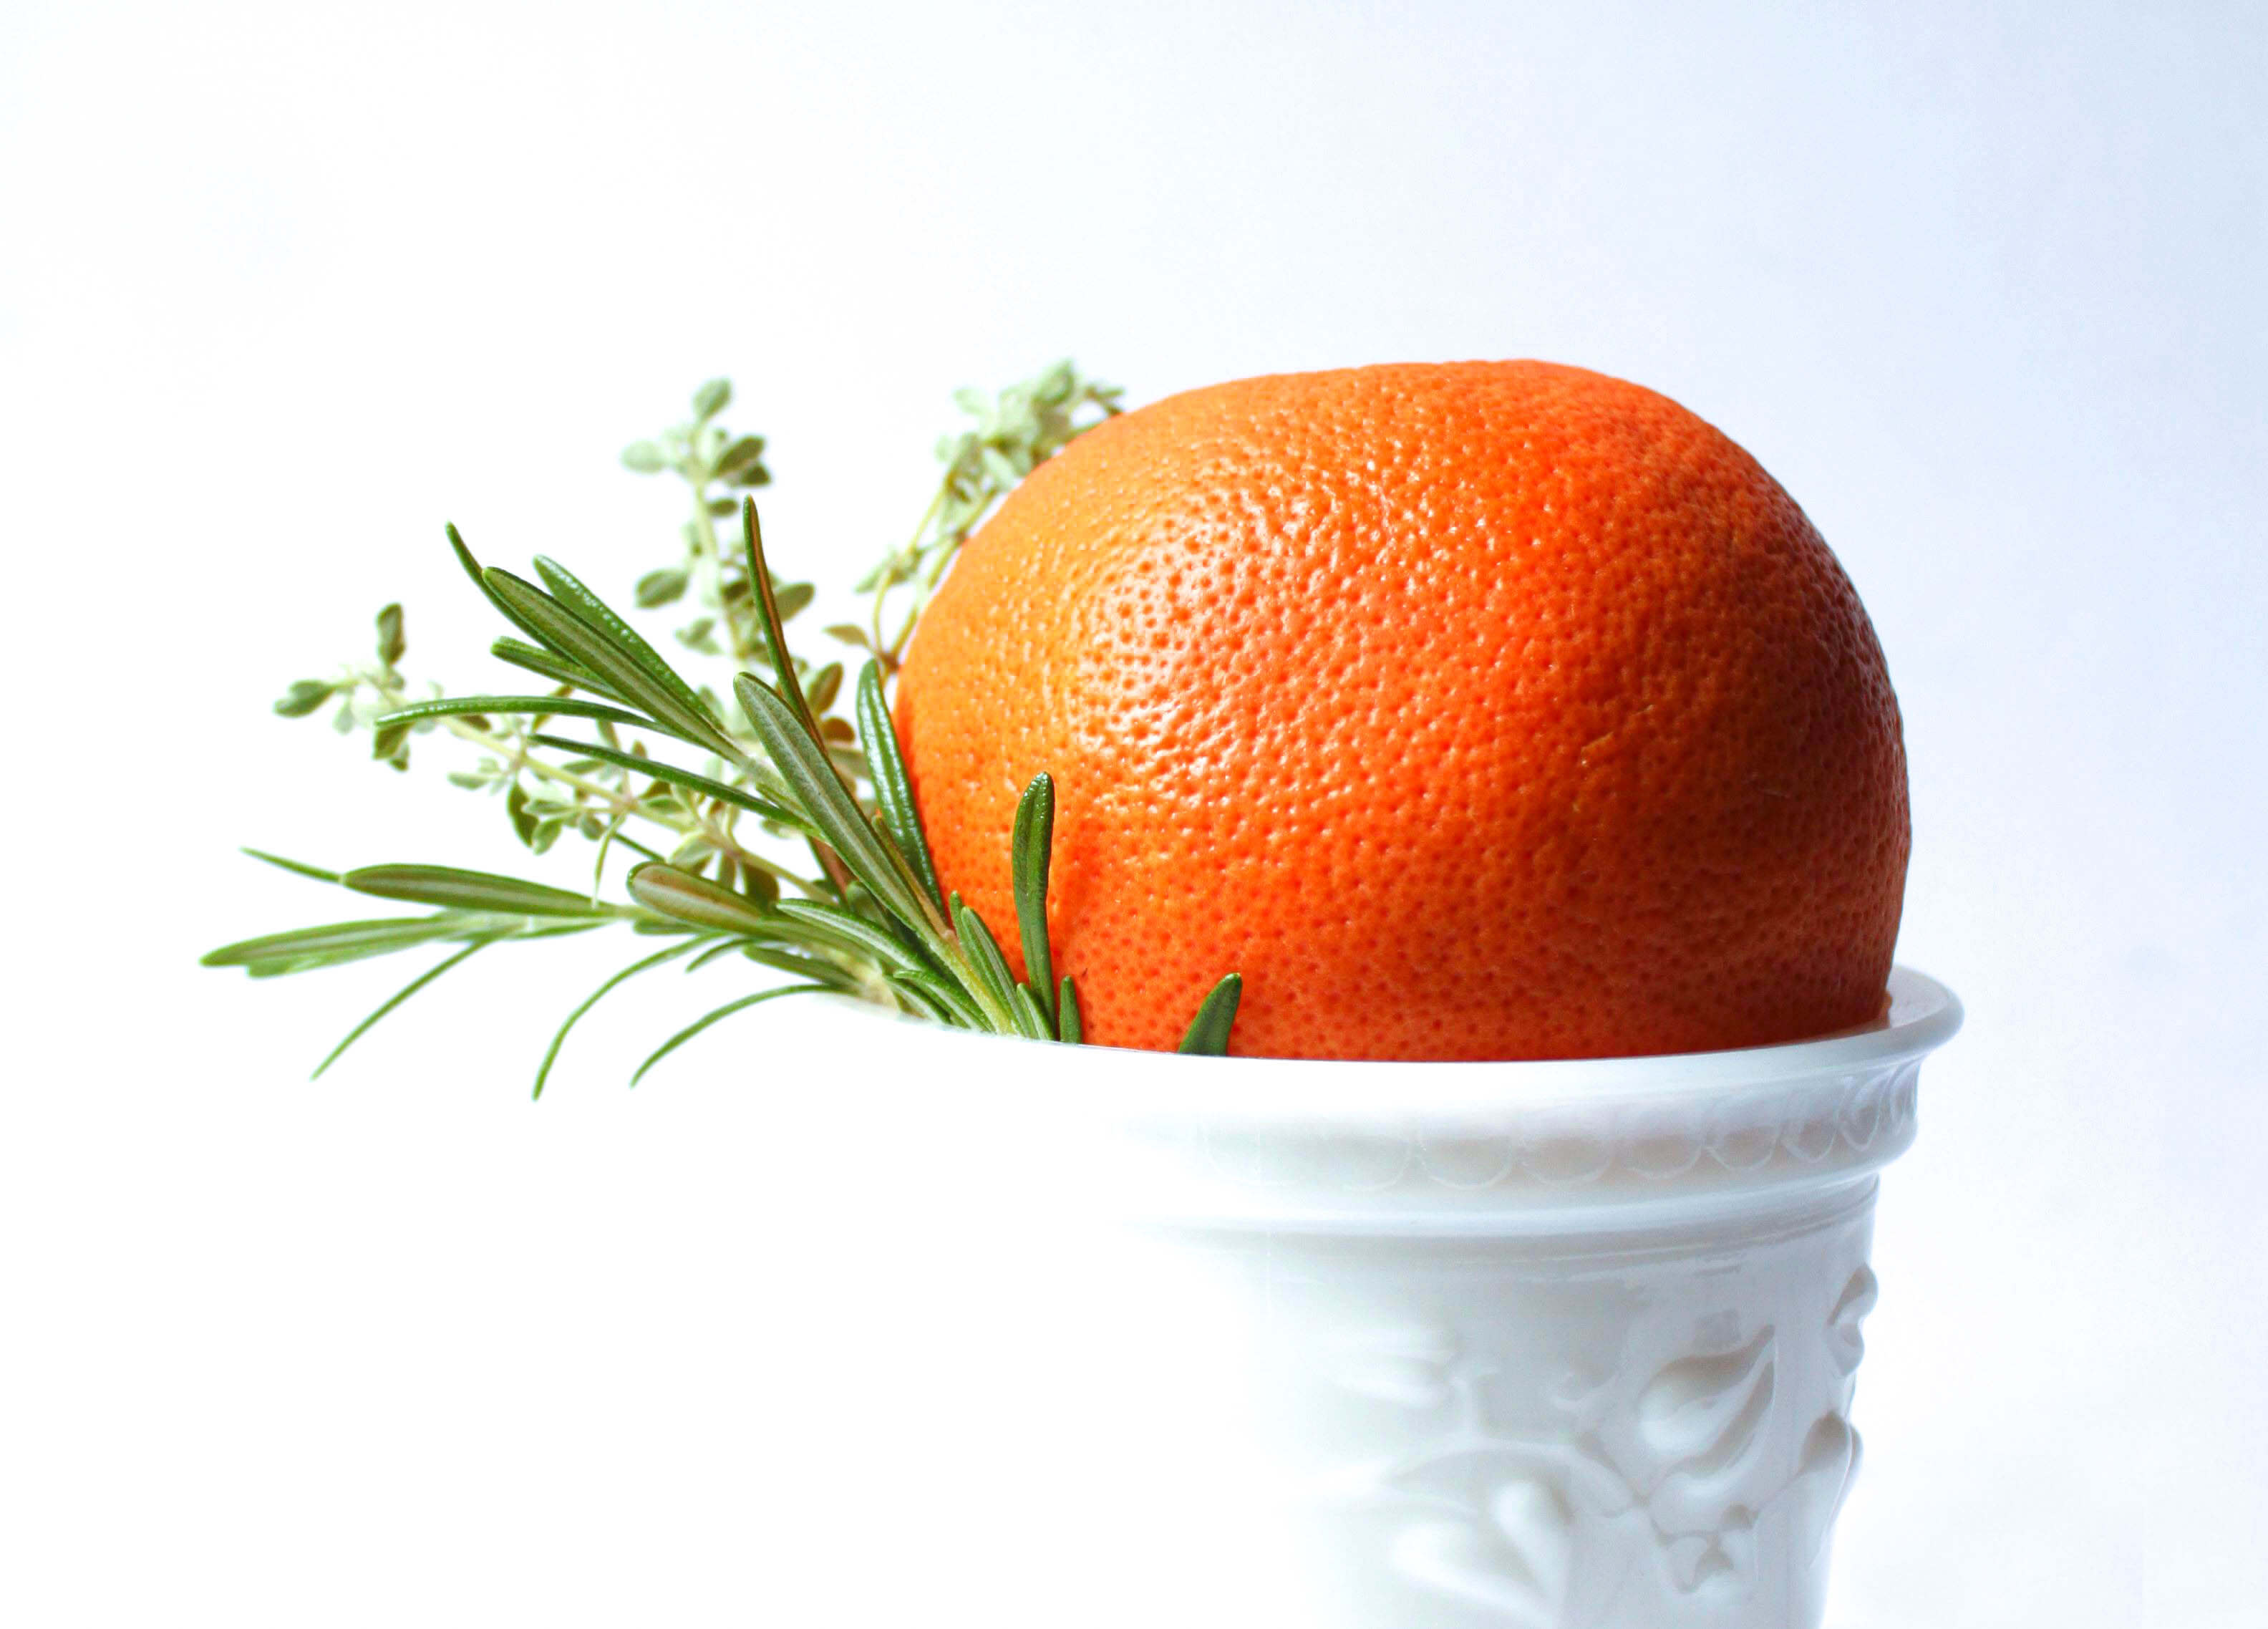 A bright orange in a white vase with fresh green herbs.